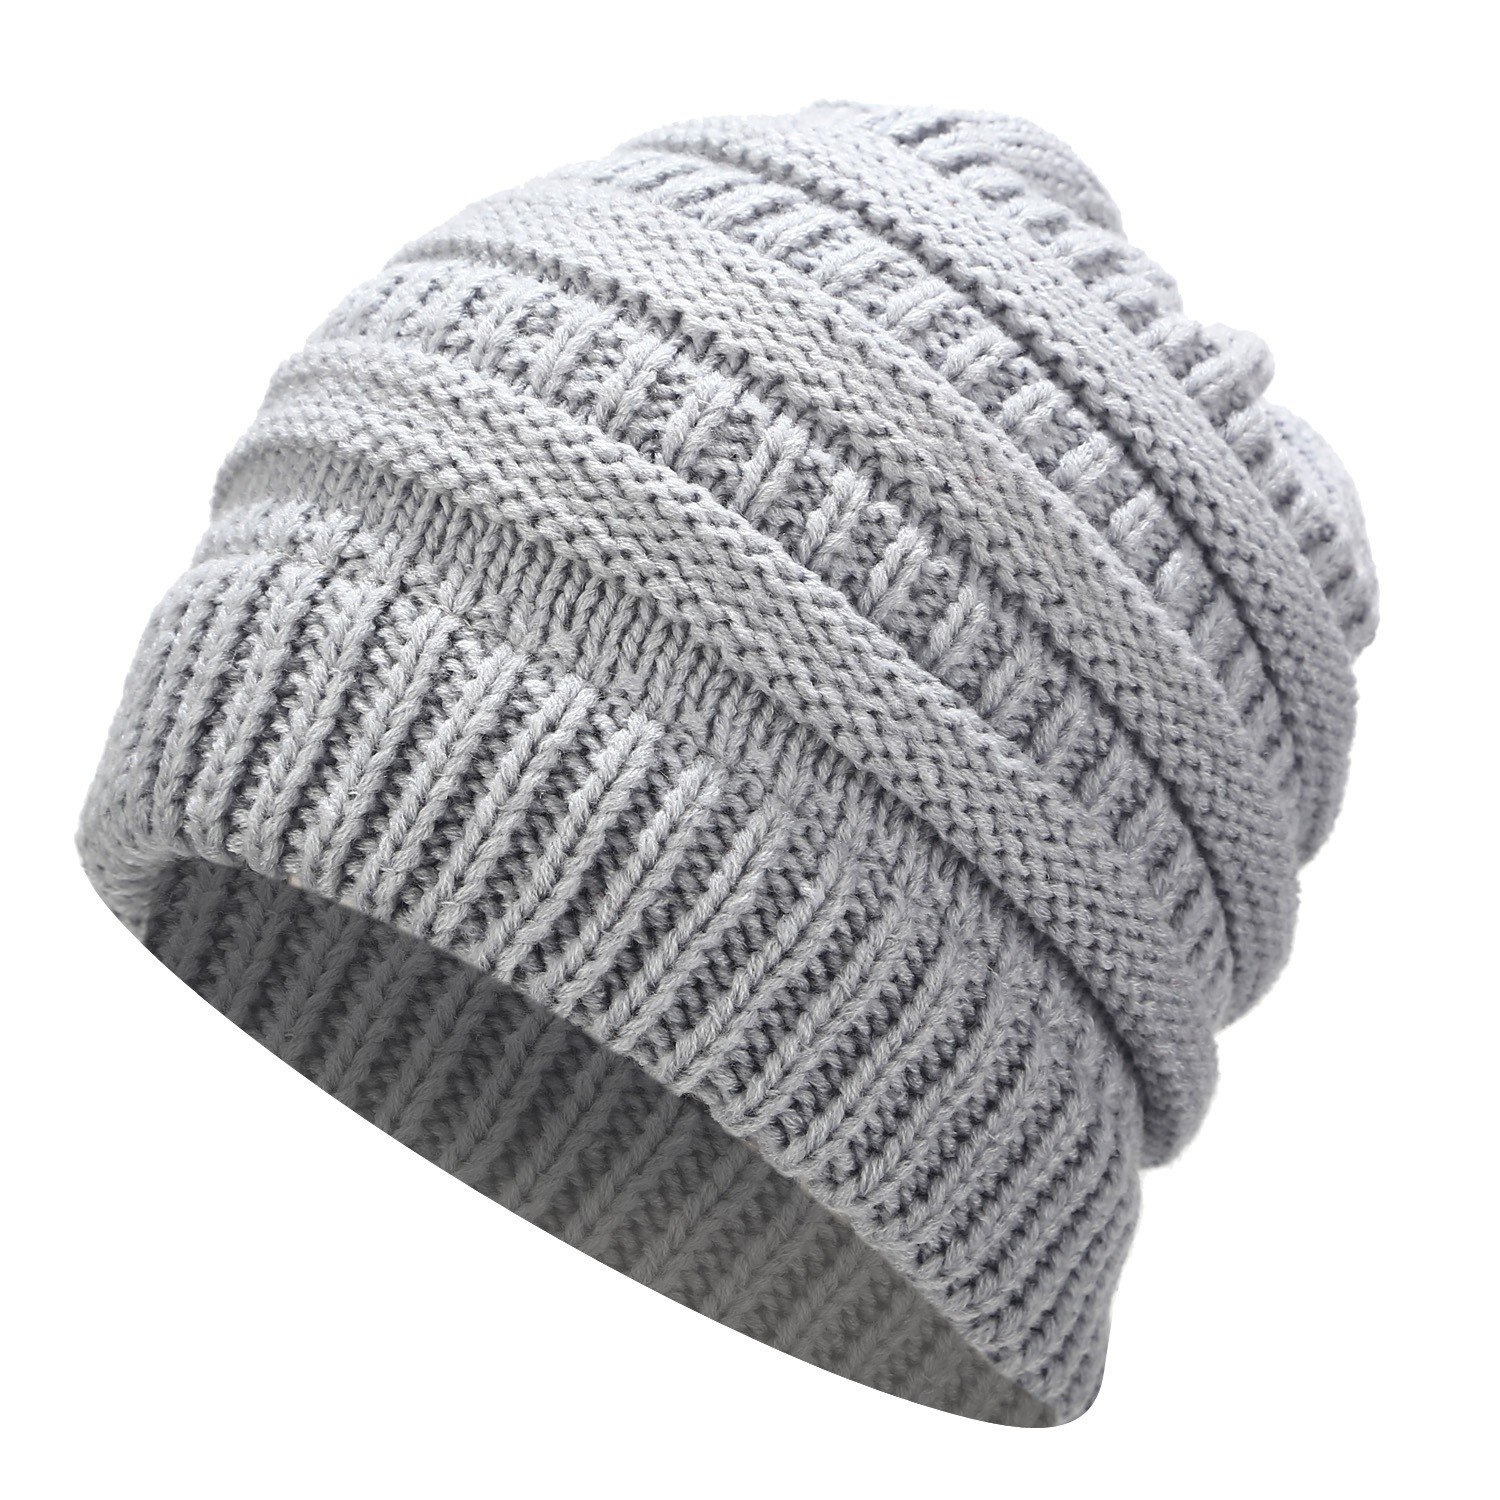 30e12880326 Ponytail Beanie Hat Winter Skullies Beanies Warm Caps Female Knitted Stylish  Hats For Ladies Fashion